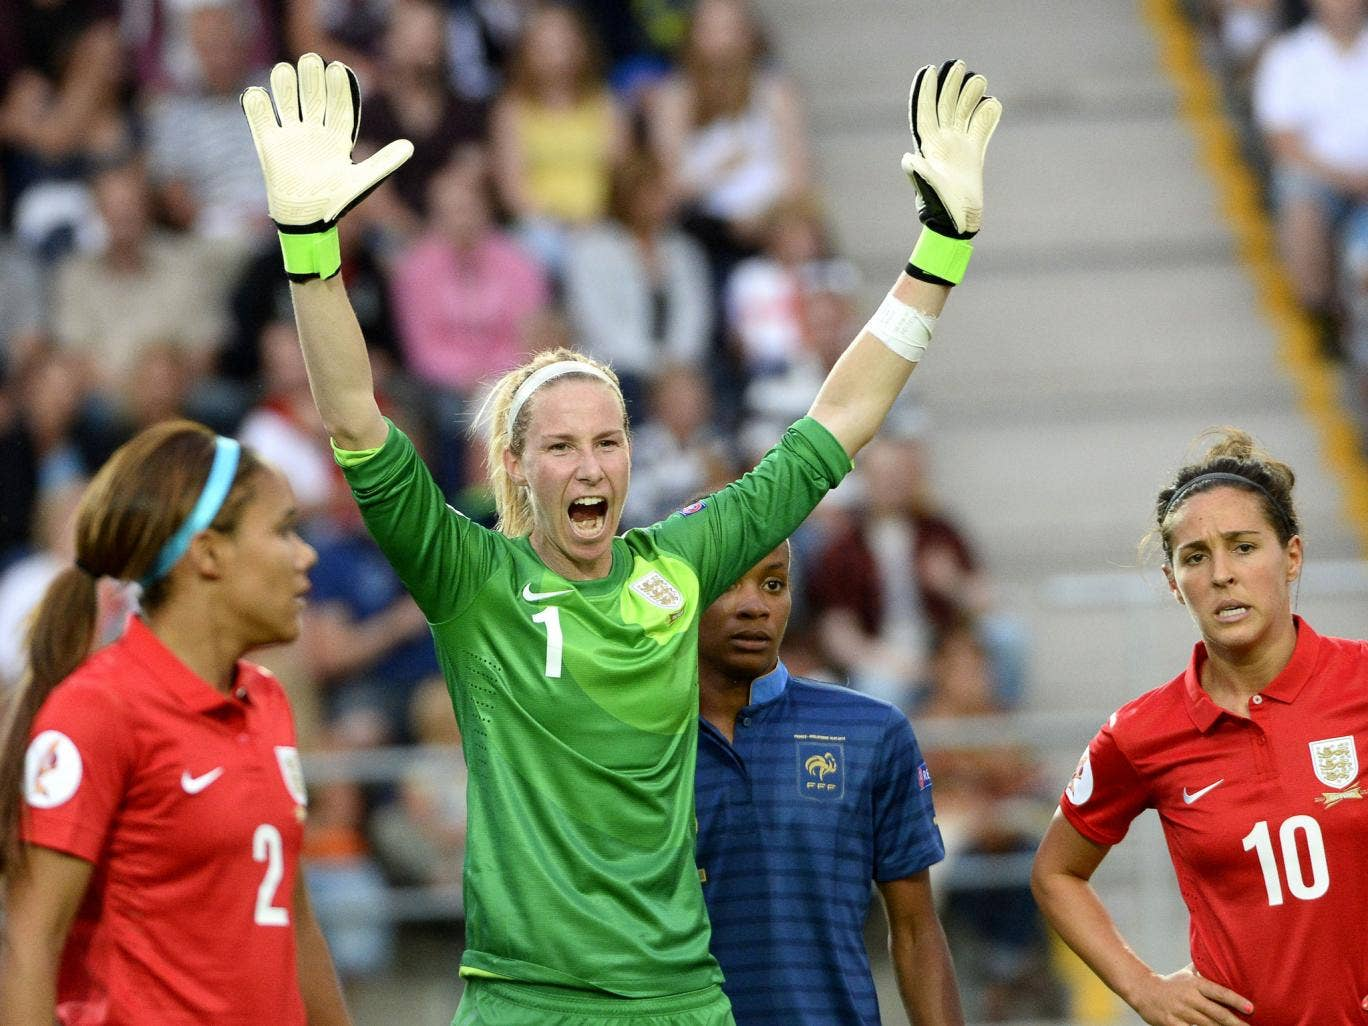 Signing England goalkeeper Karen Bardsley shows that City aim to make a big impact on WSL